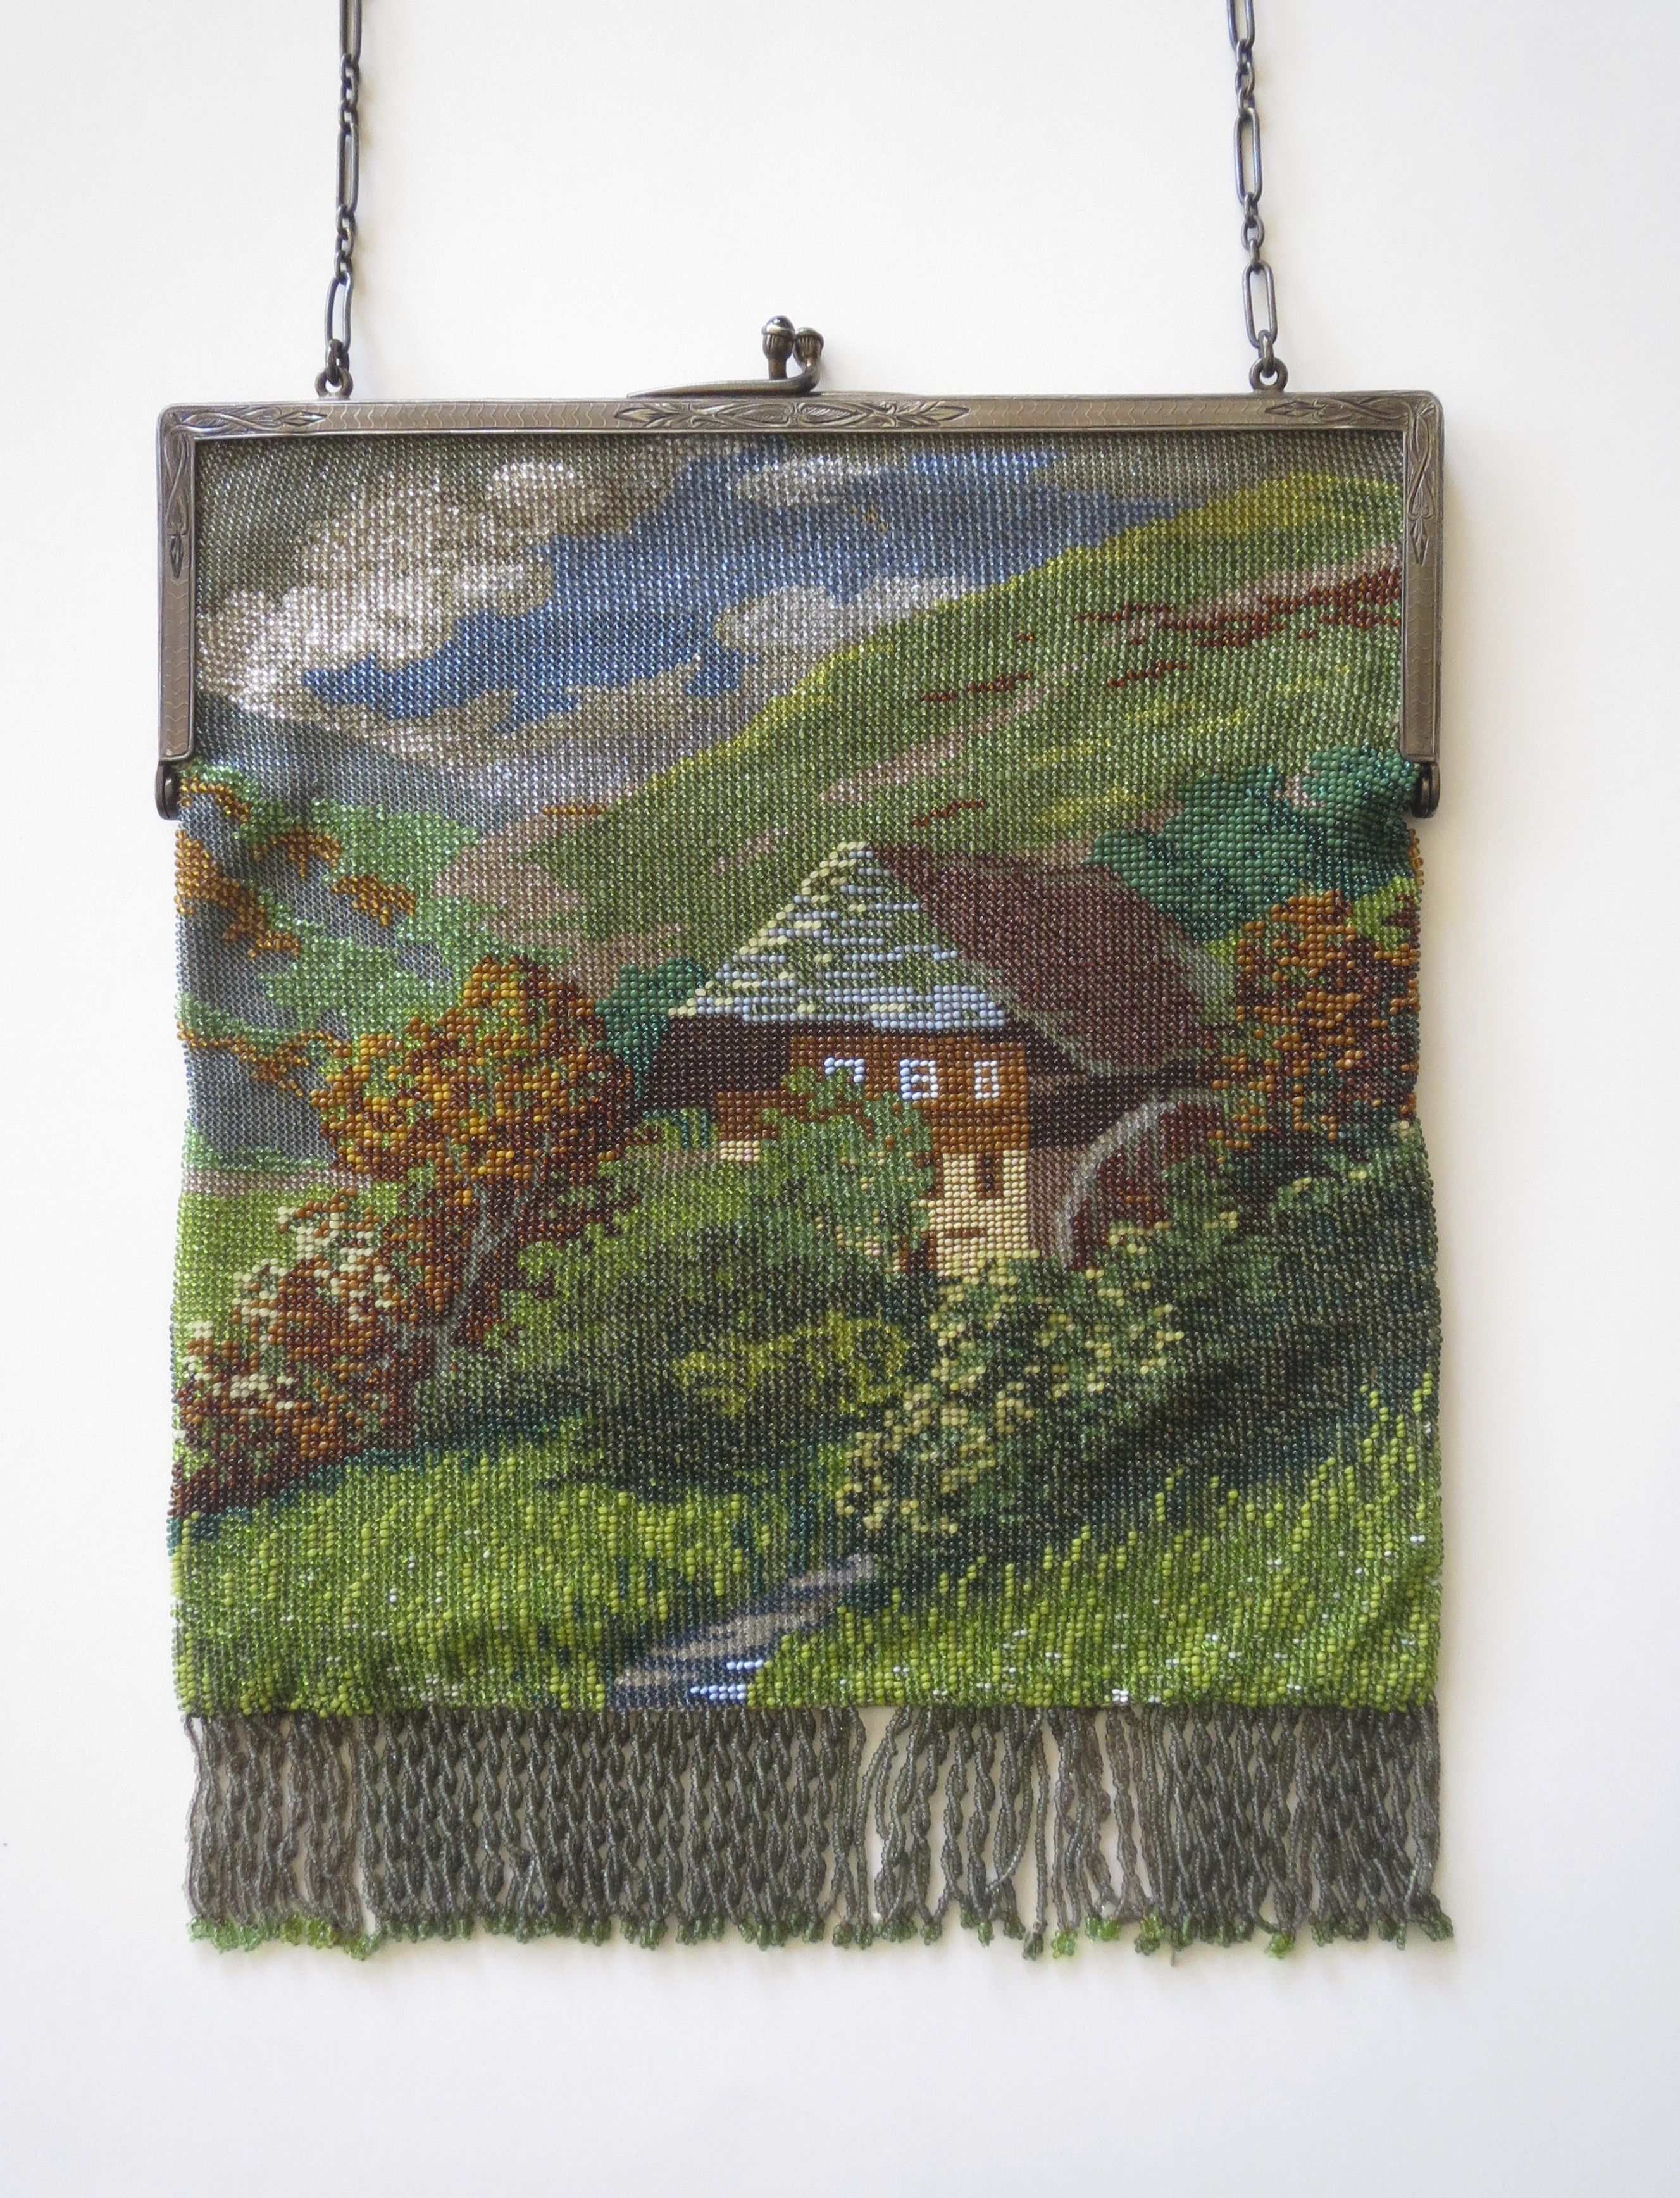 1920 S German Black Forest Water Wheel Scenic Purse From Lori Blaser Collection